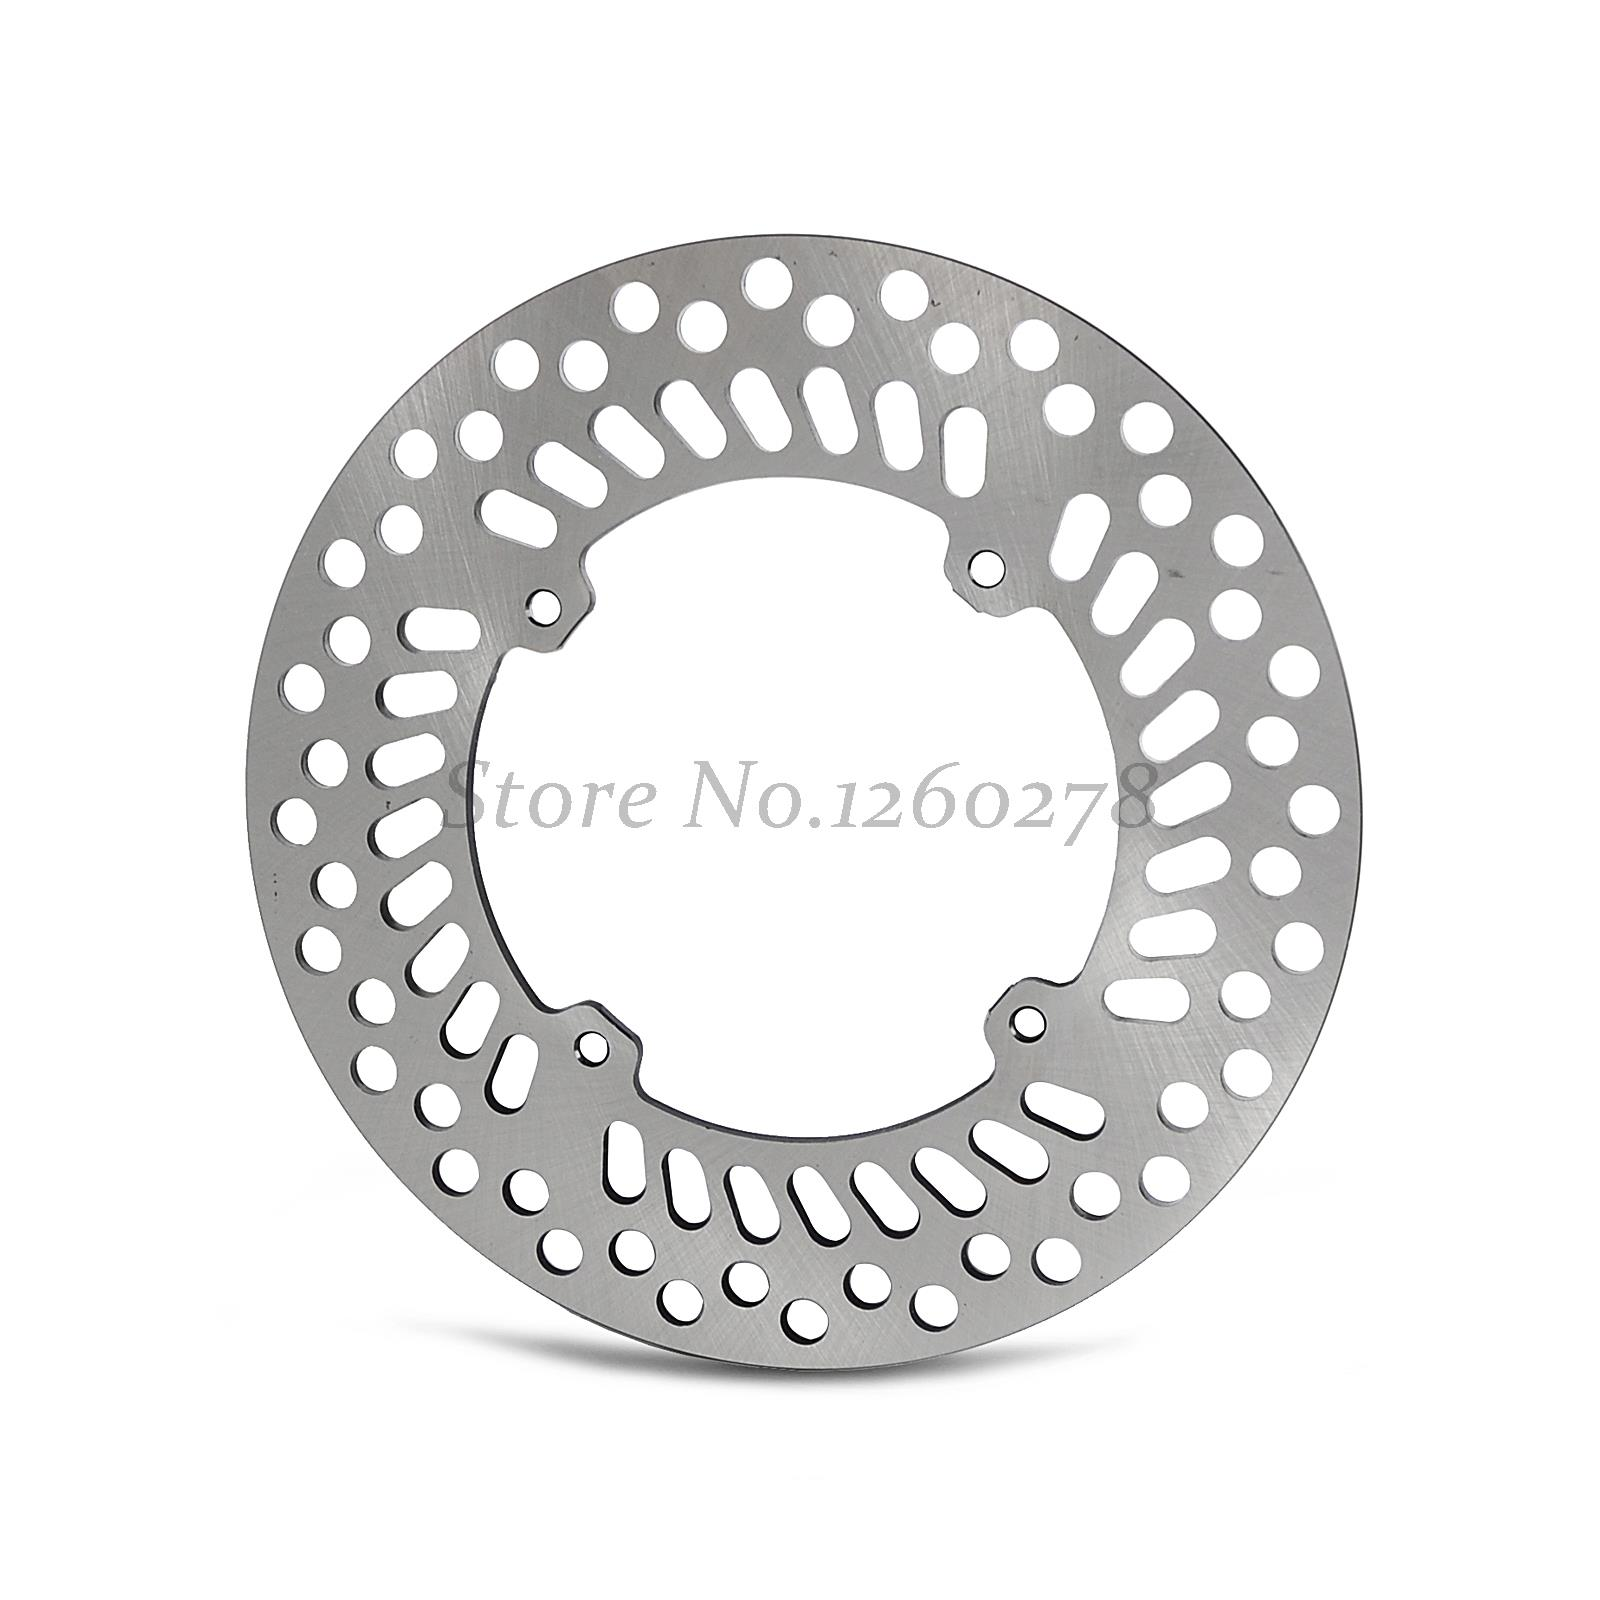 New Motorcycle Front Rotor Brake Disc For Honda CR125 250 500 MTX125 200 XR250 600 XL125